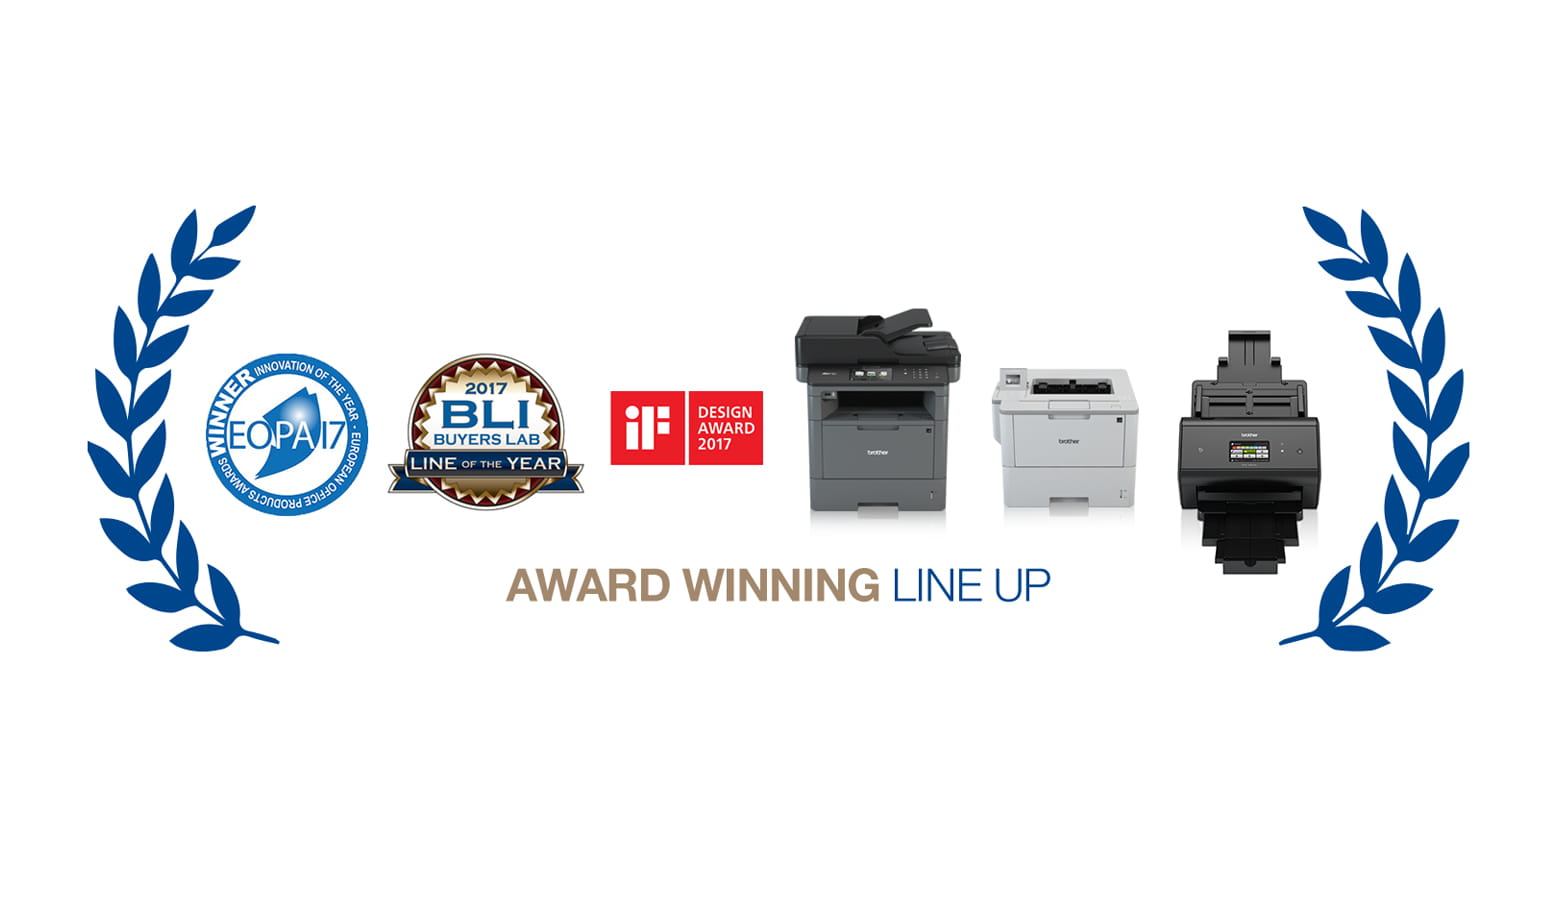 Image shows award winning line up of Brother products